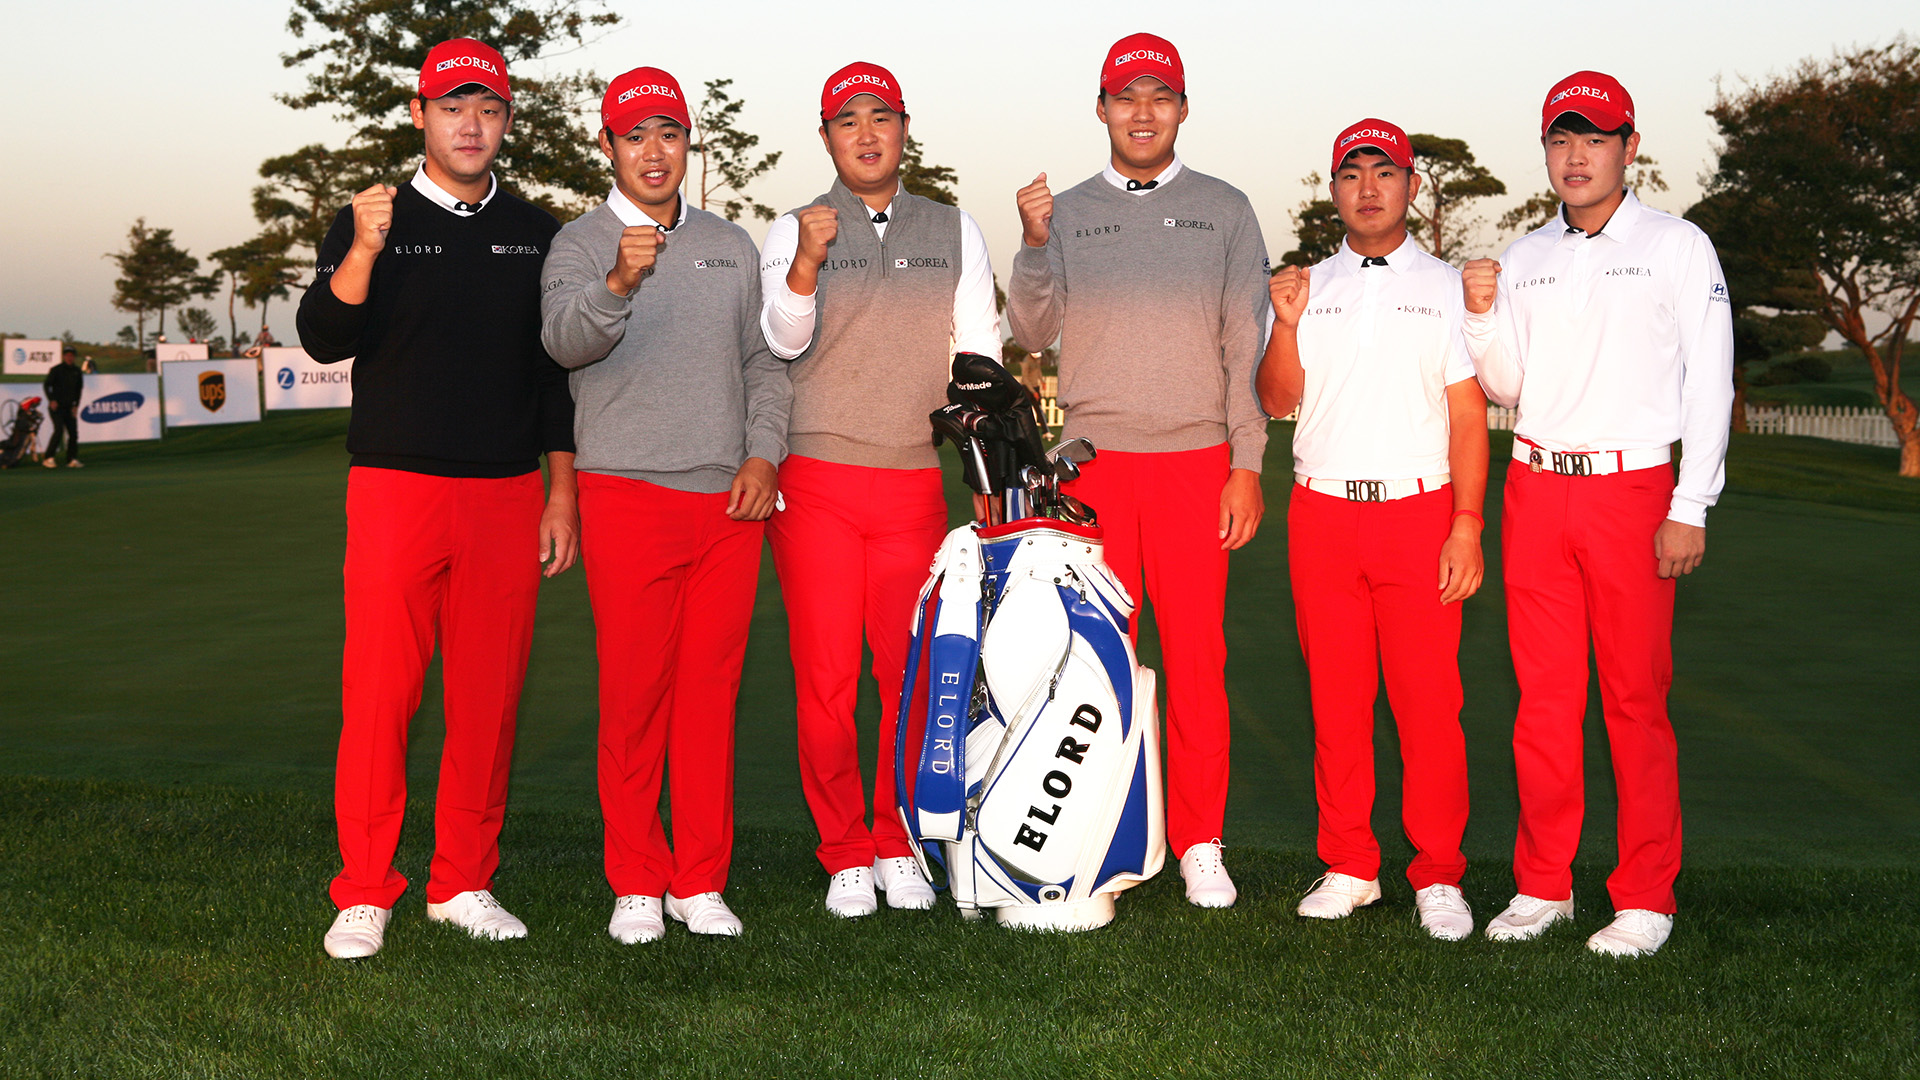 Incheon, South Korea: Team Korea during the official practice round ahead of the 2016 Asia-Pacific Amateur Championship at the Jack Nicklaus Golf Club in Korea on October 4th, 2016. (Photo by AAC)